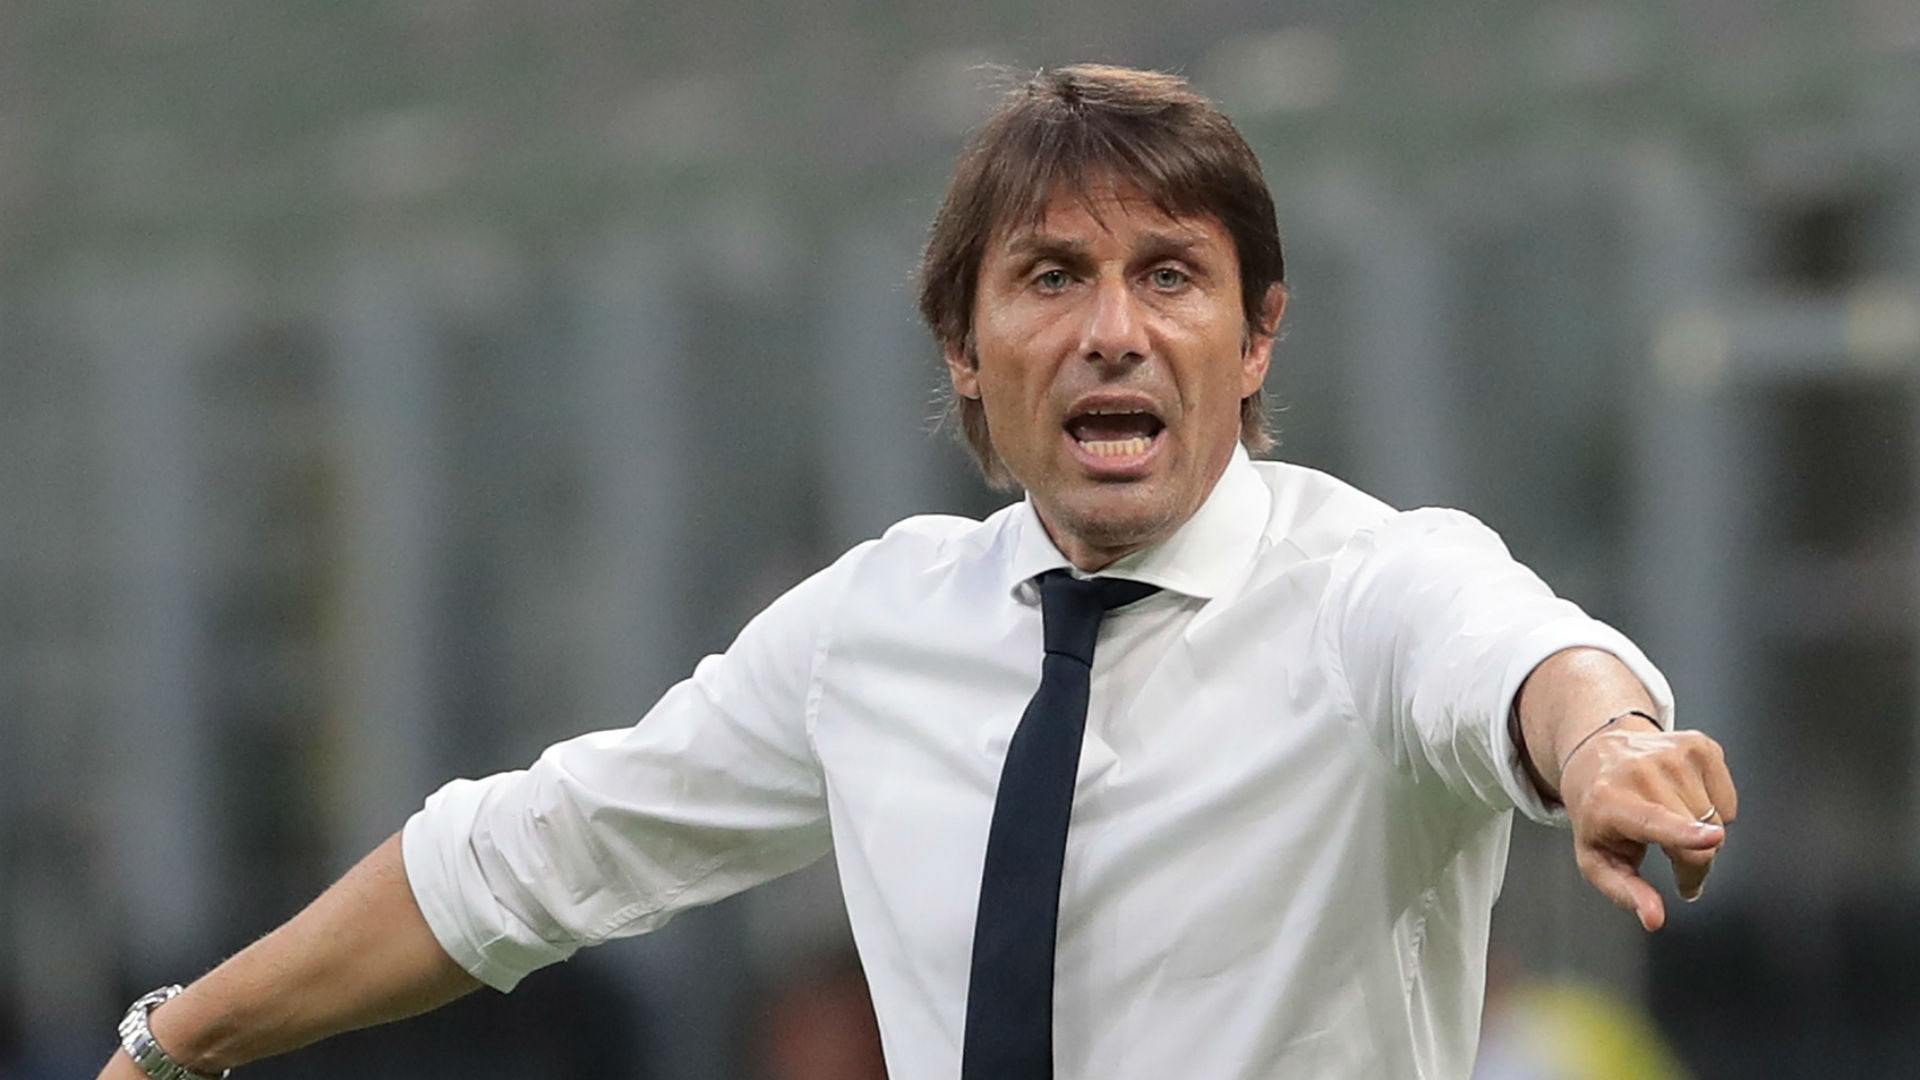 Conte won't 'hesitate' to leave if Inter aren't happy amid speculation